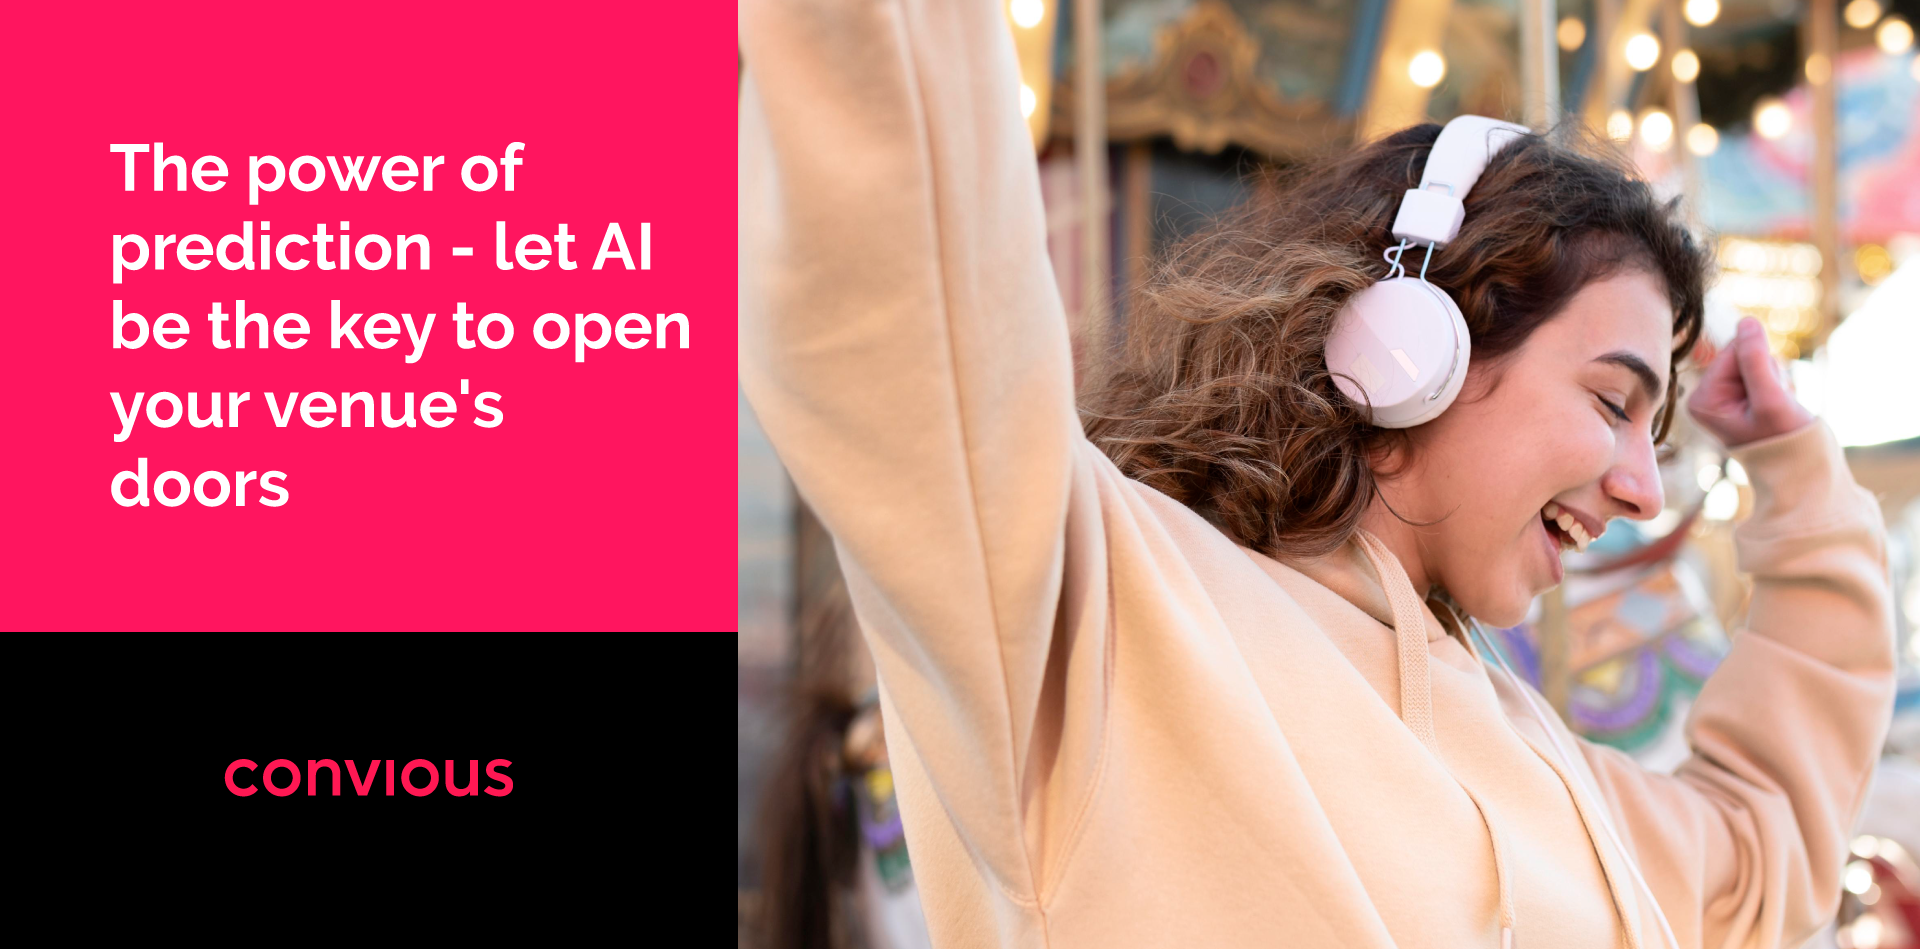 The power of prediction - let AI be the key to open your venue's doors